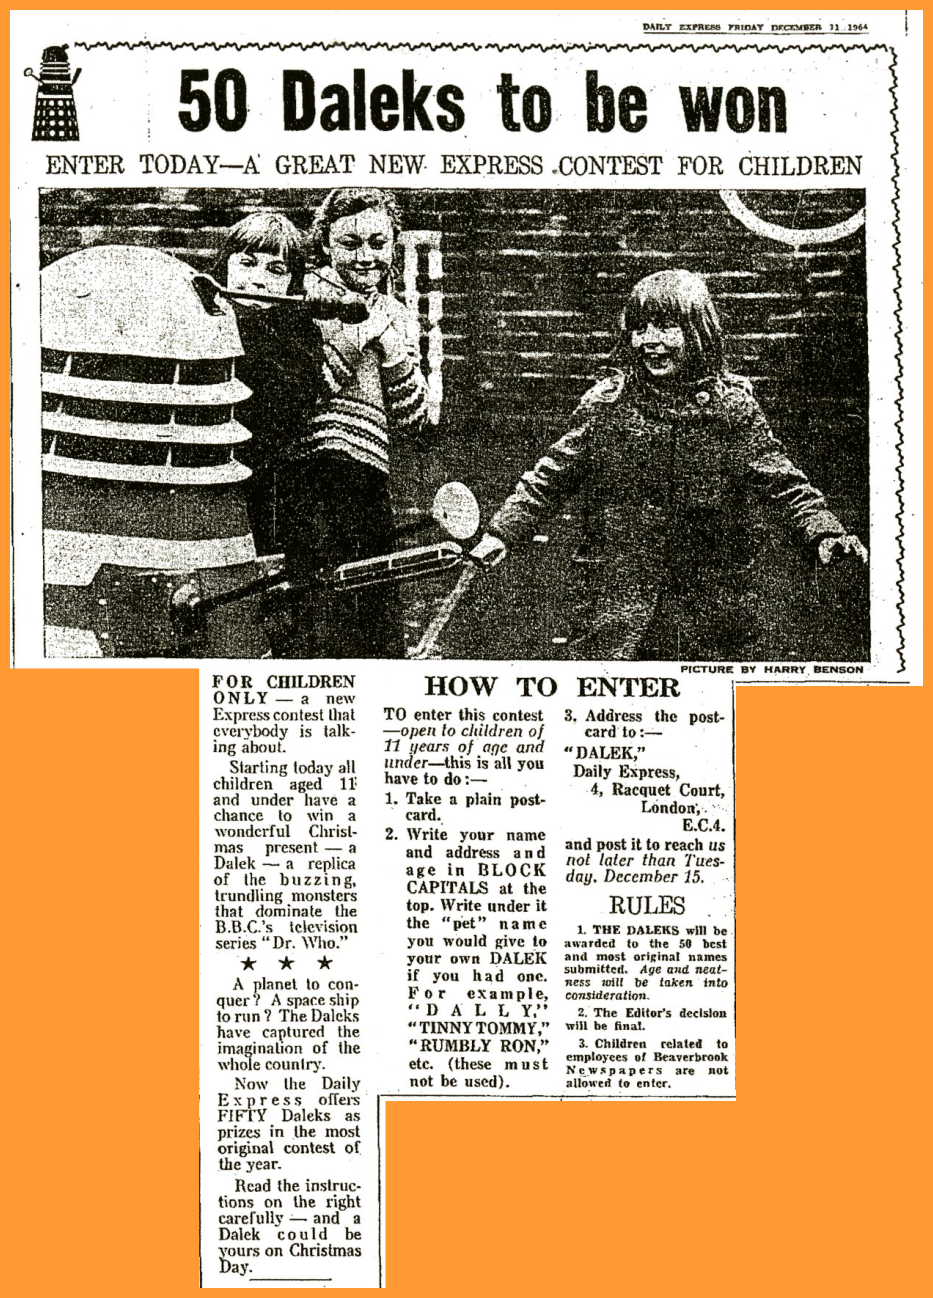 WANTED - Daily Express, 11 December 1964 with a Win a Dalek competition article